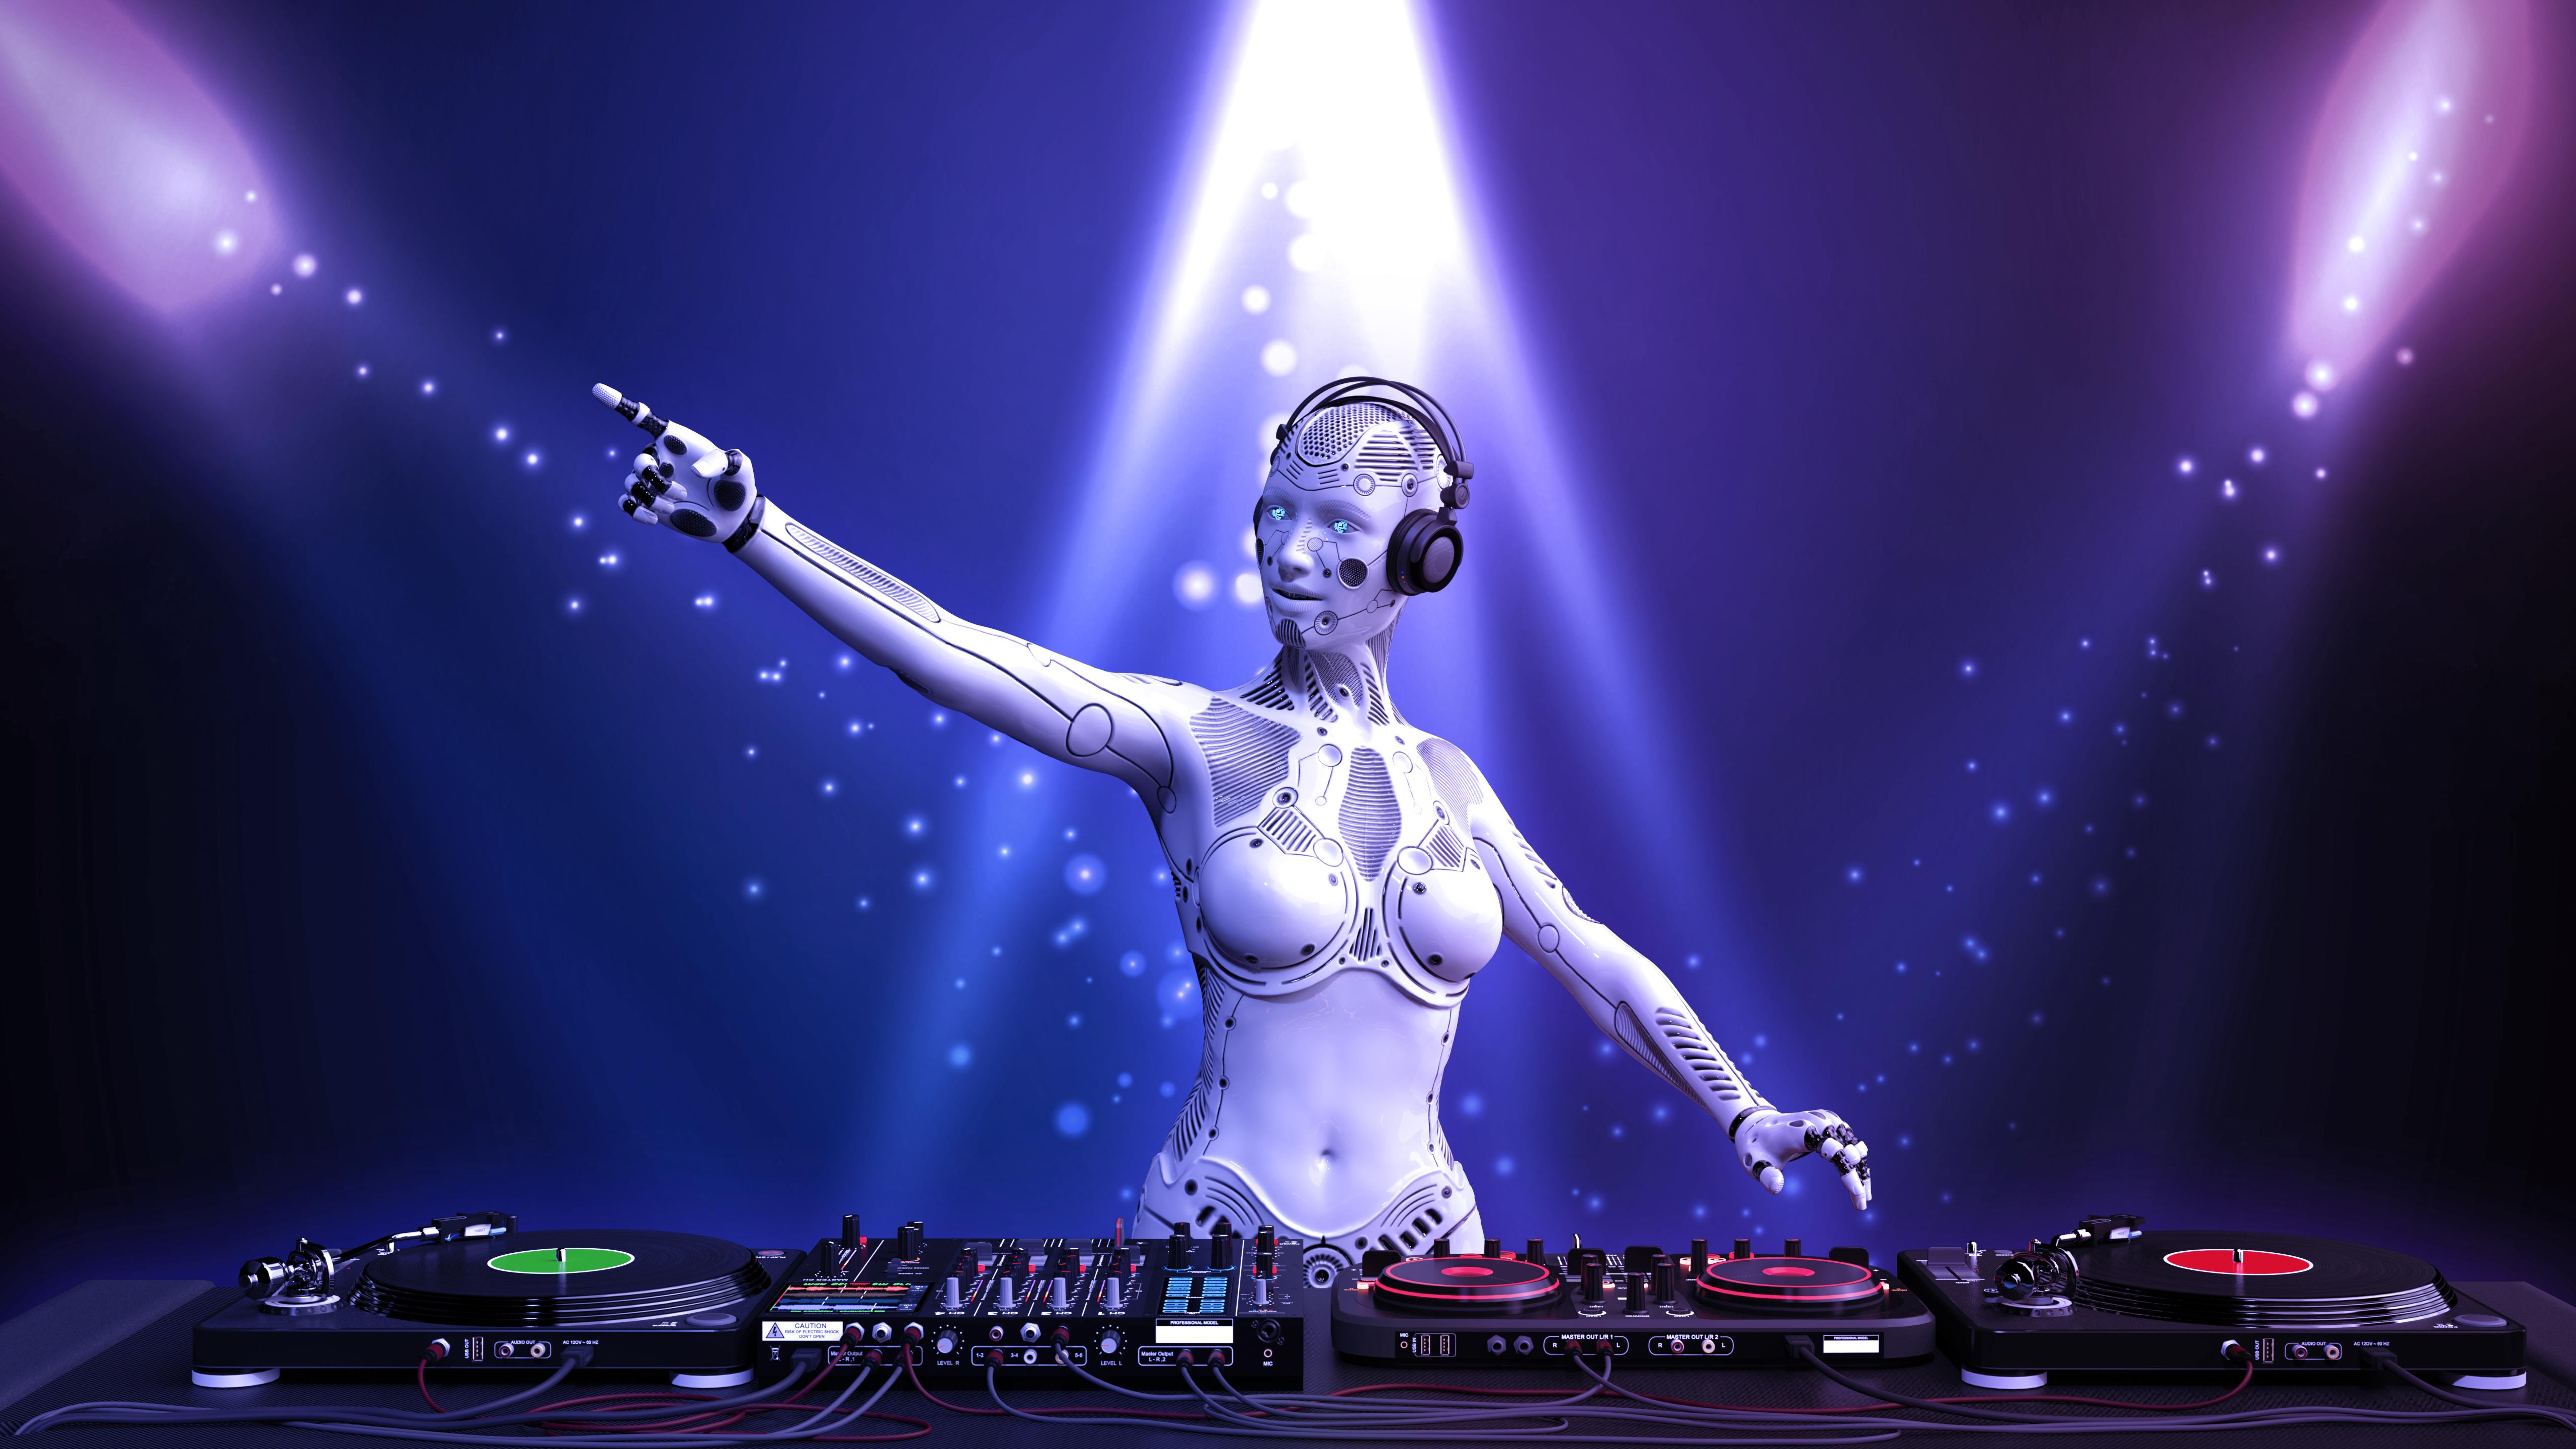 DJ android, disc jockey robot pointing and playing music on turntables, cyborg on stage with deejay audio equipment, 3D rendering